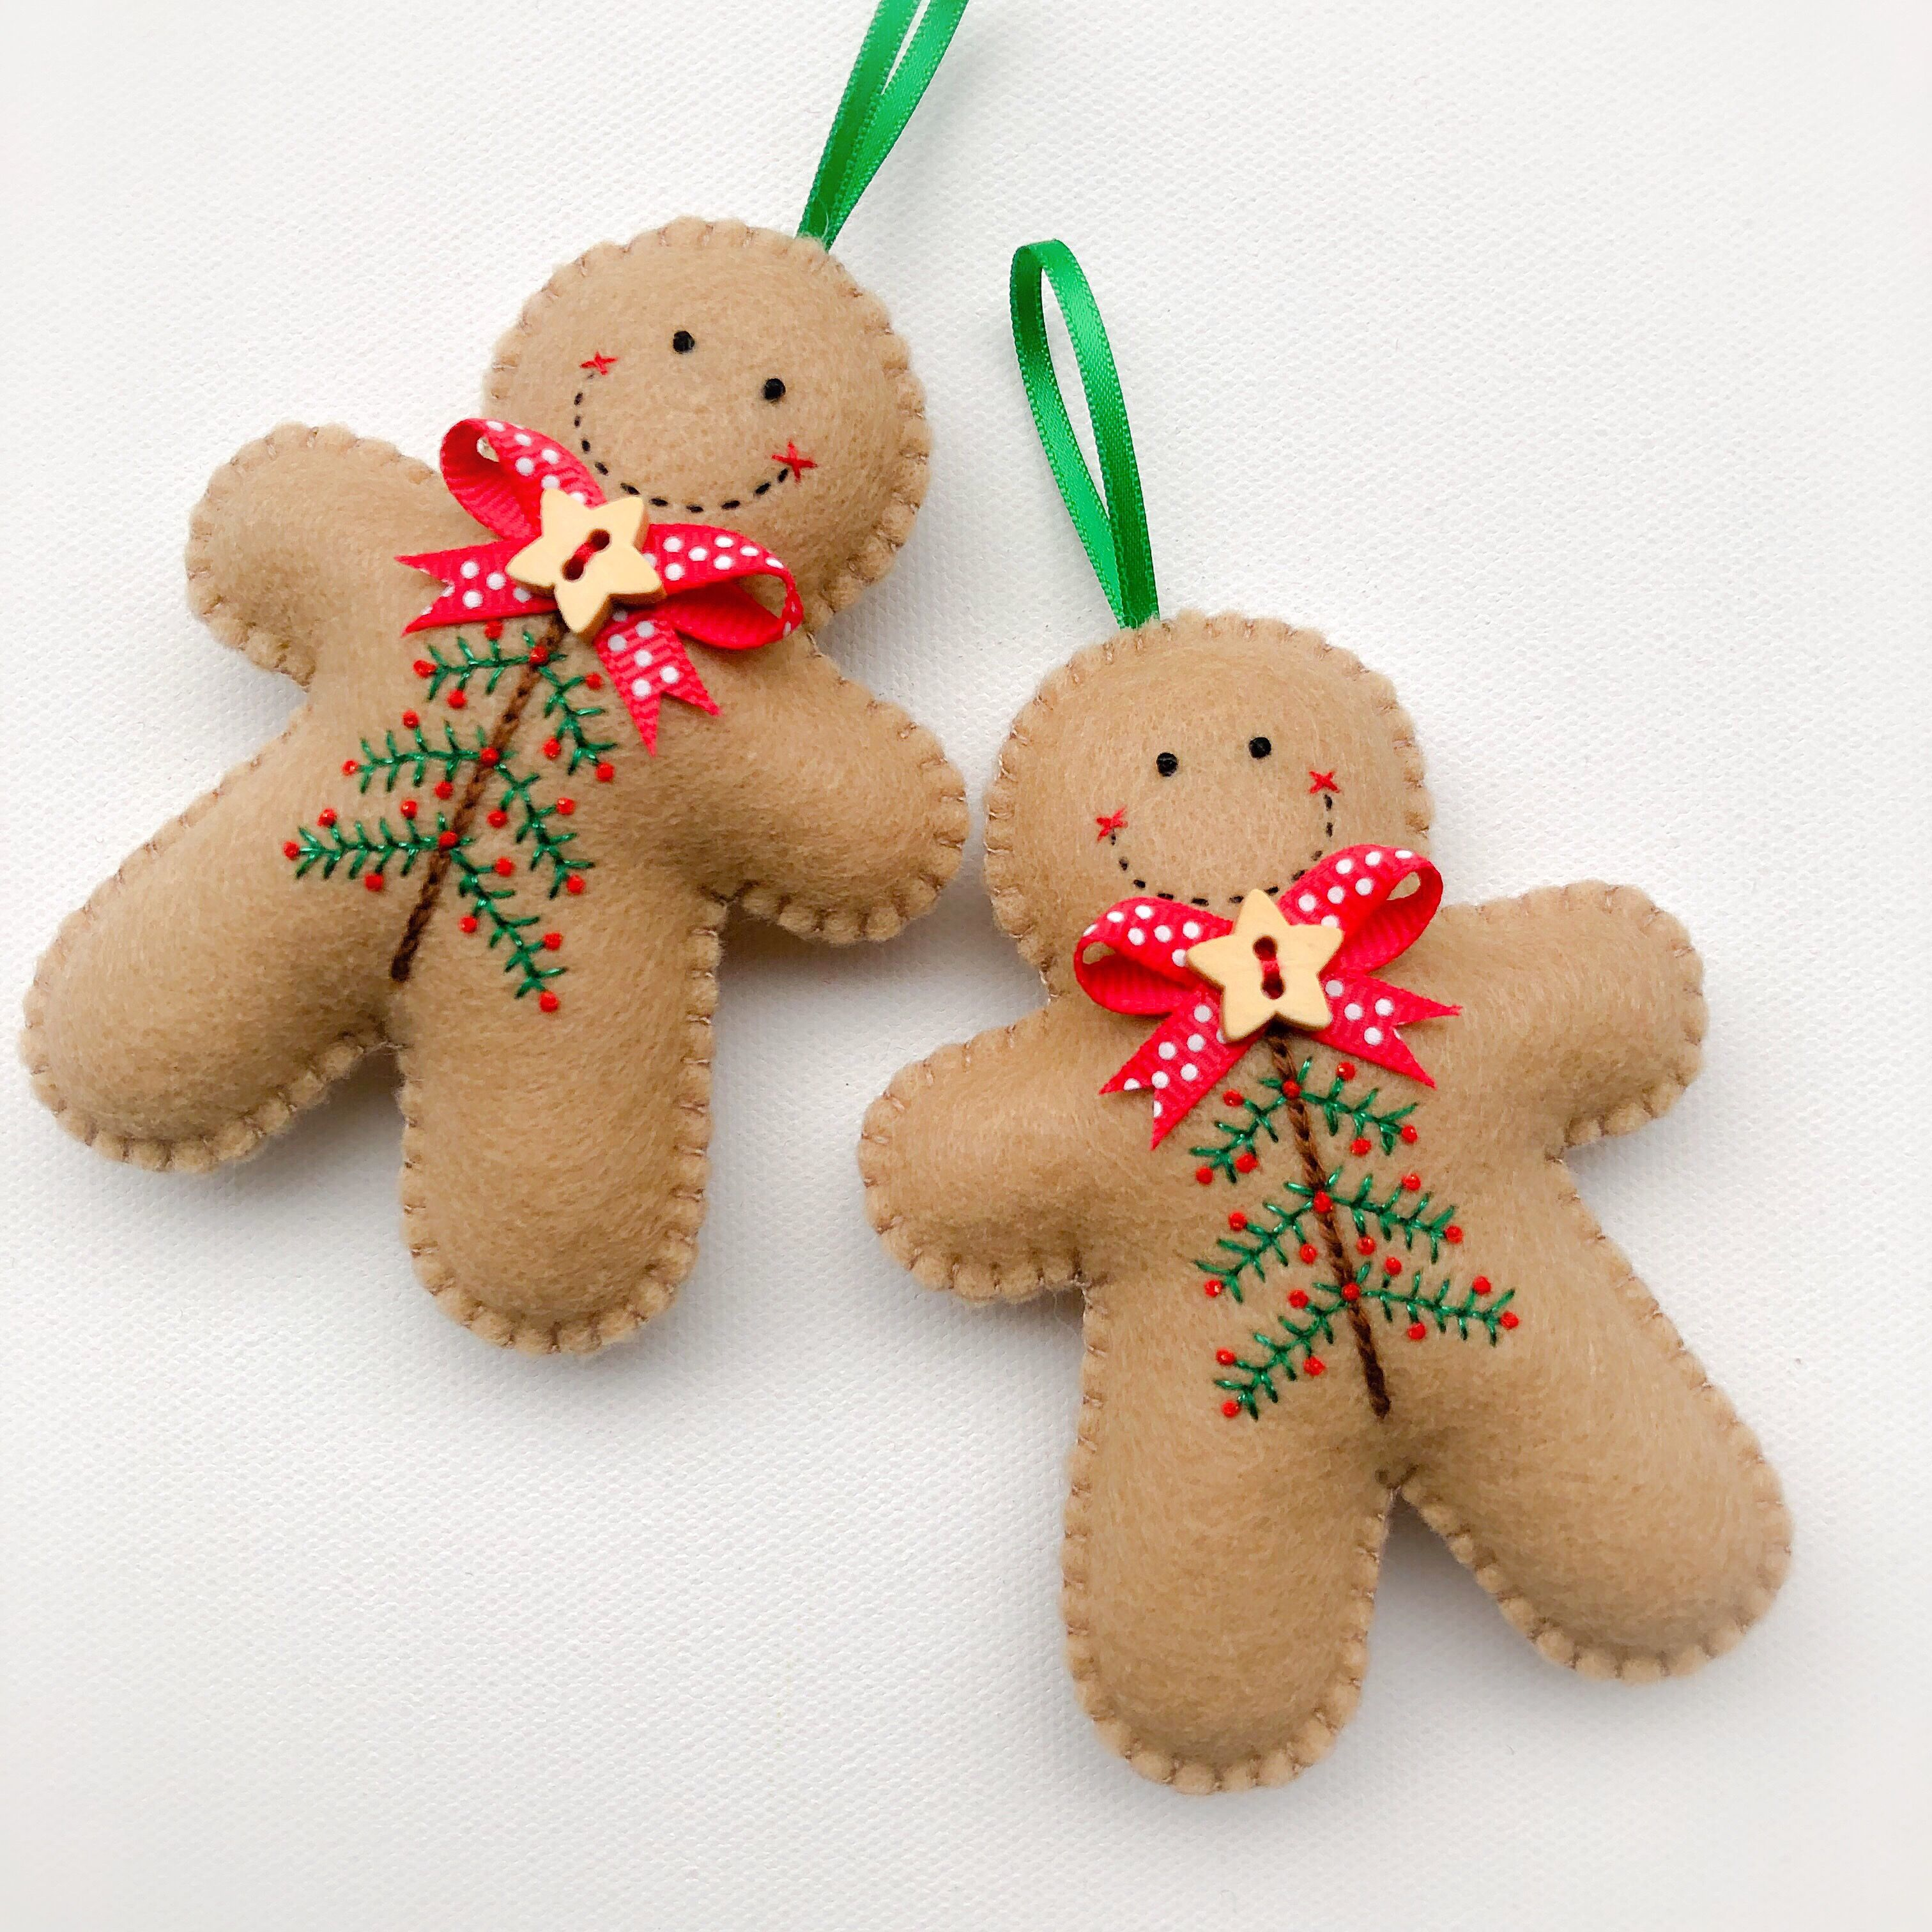 Embroidered Felt Gingerbread Man Christmas Decoration Felt